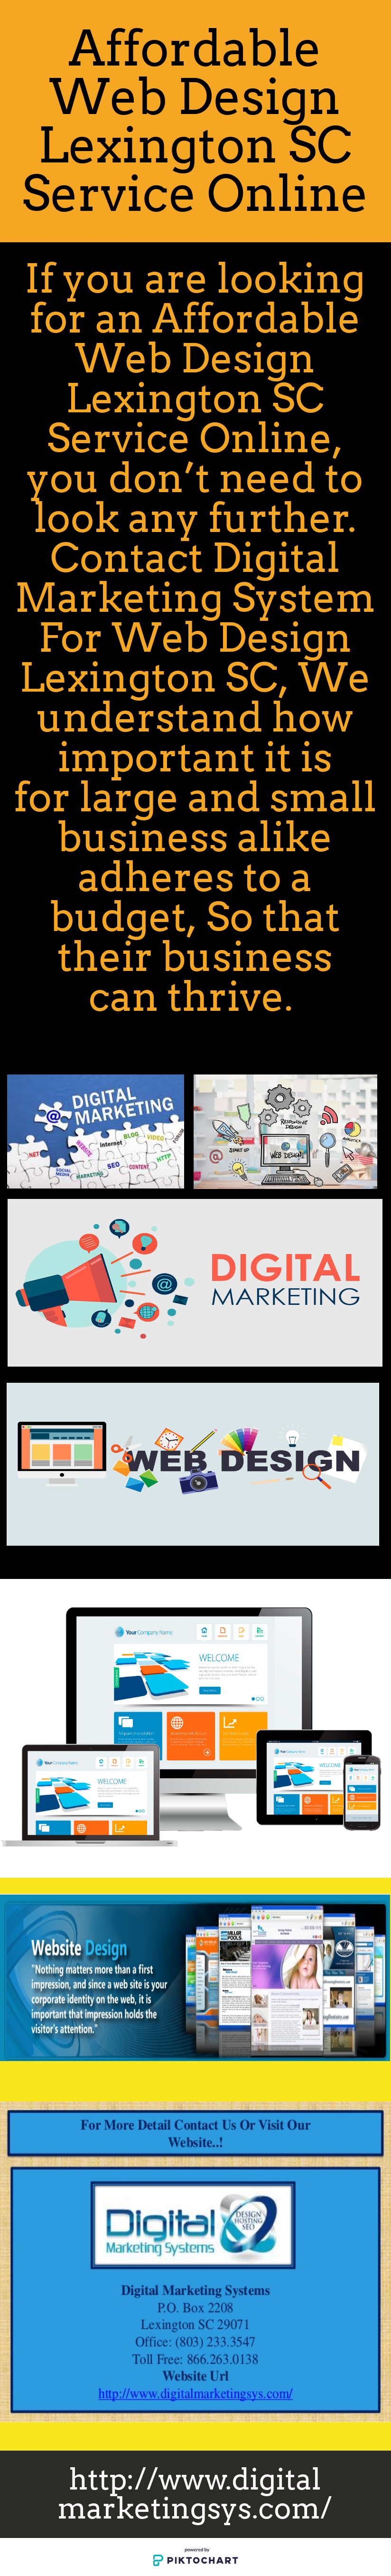 If You Are Looking For An Affordable Web Design Lexington Sc Service Online You Don T Need To Look Any Furt Web Design Affordable Web Design Custom Web Design